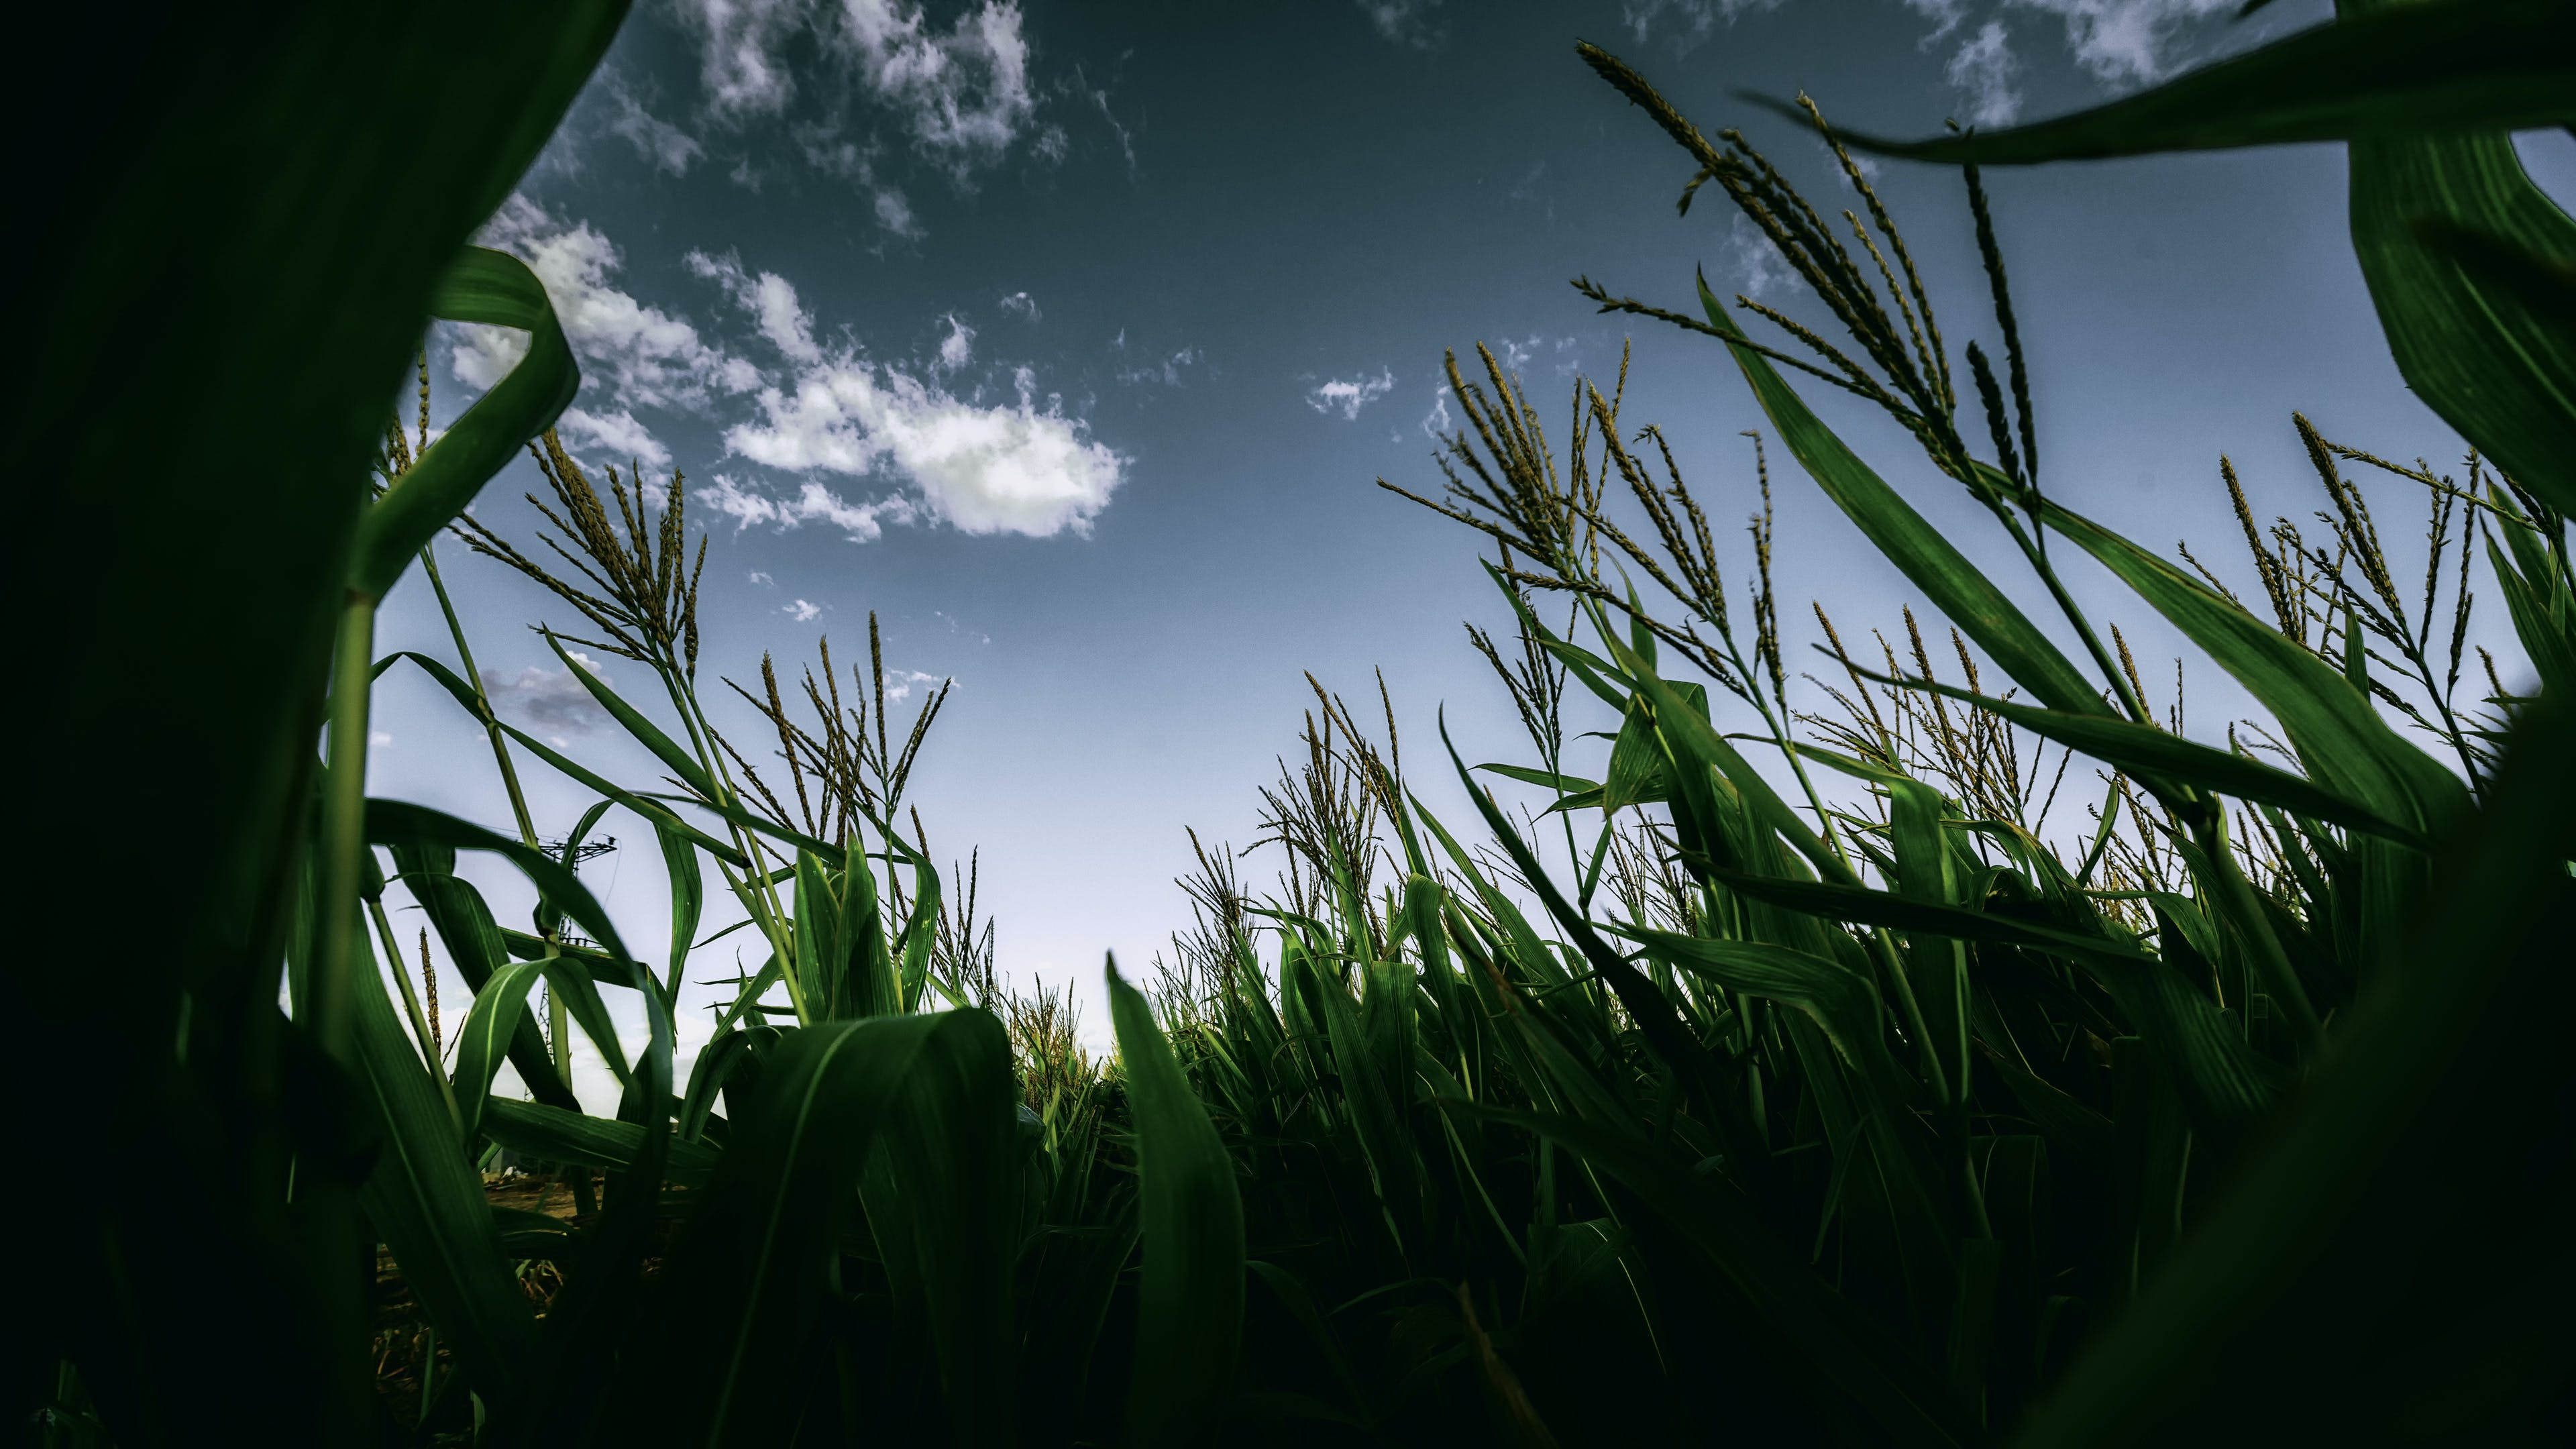 Silhouette Photography of Green Crops